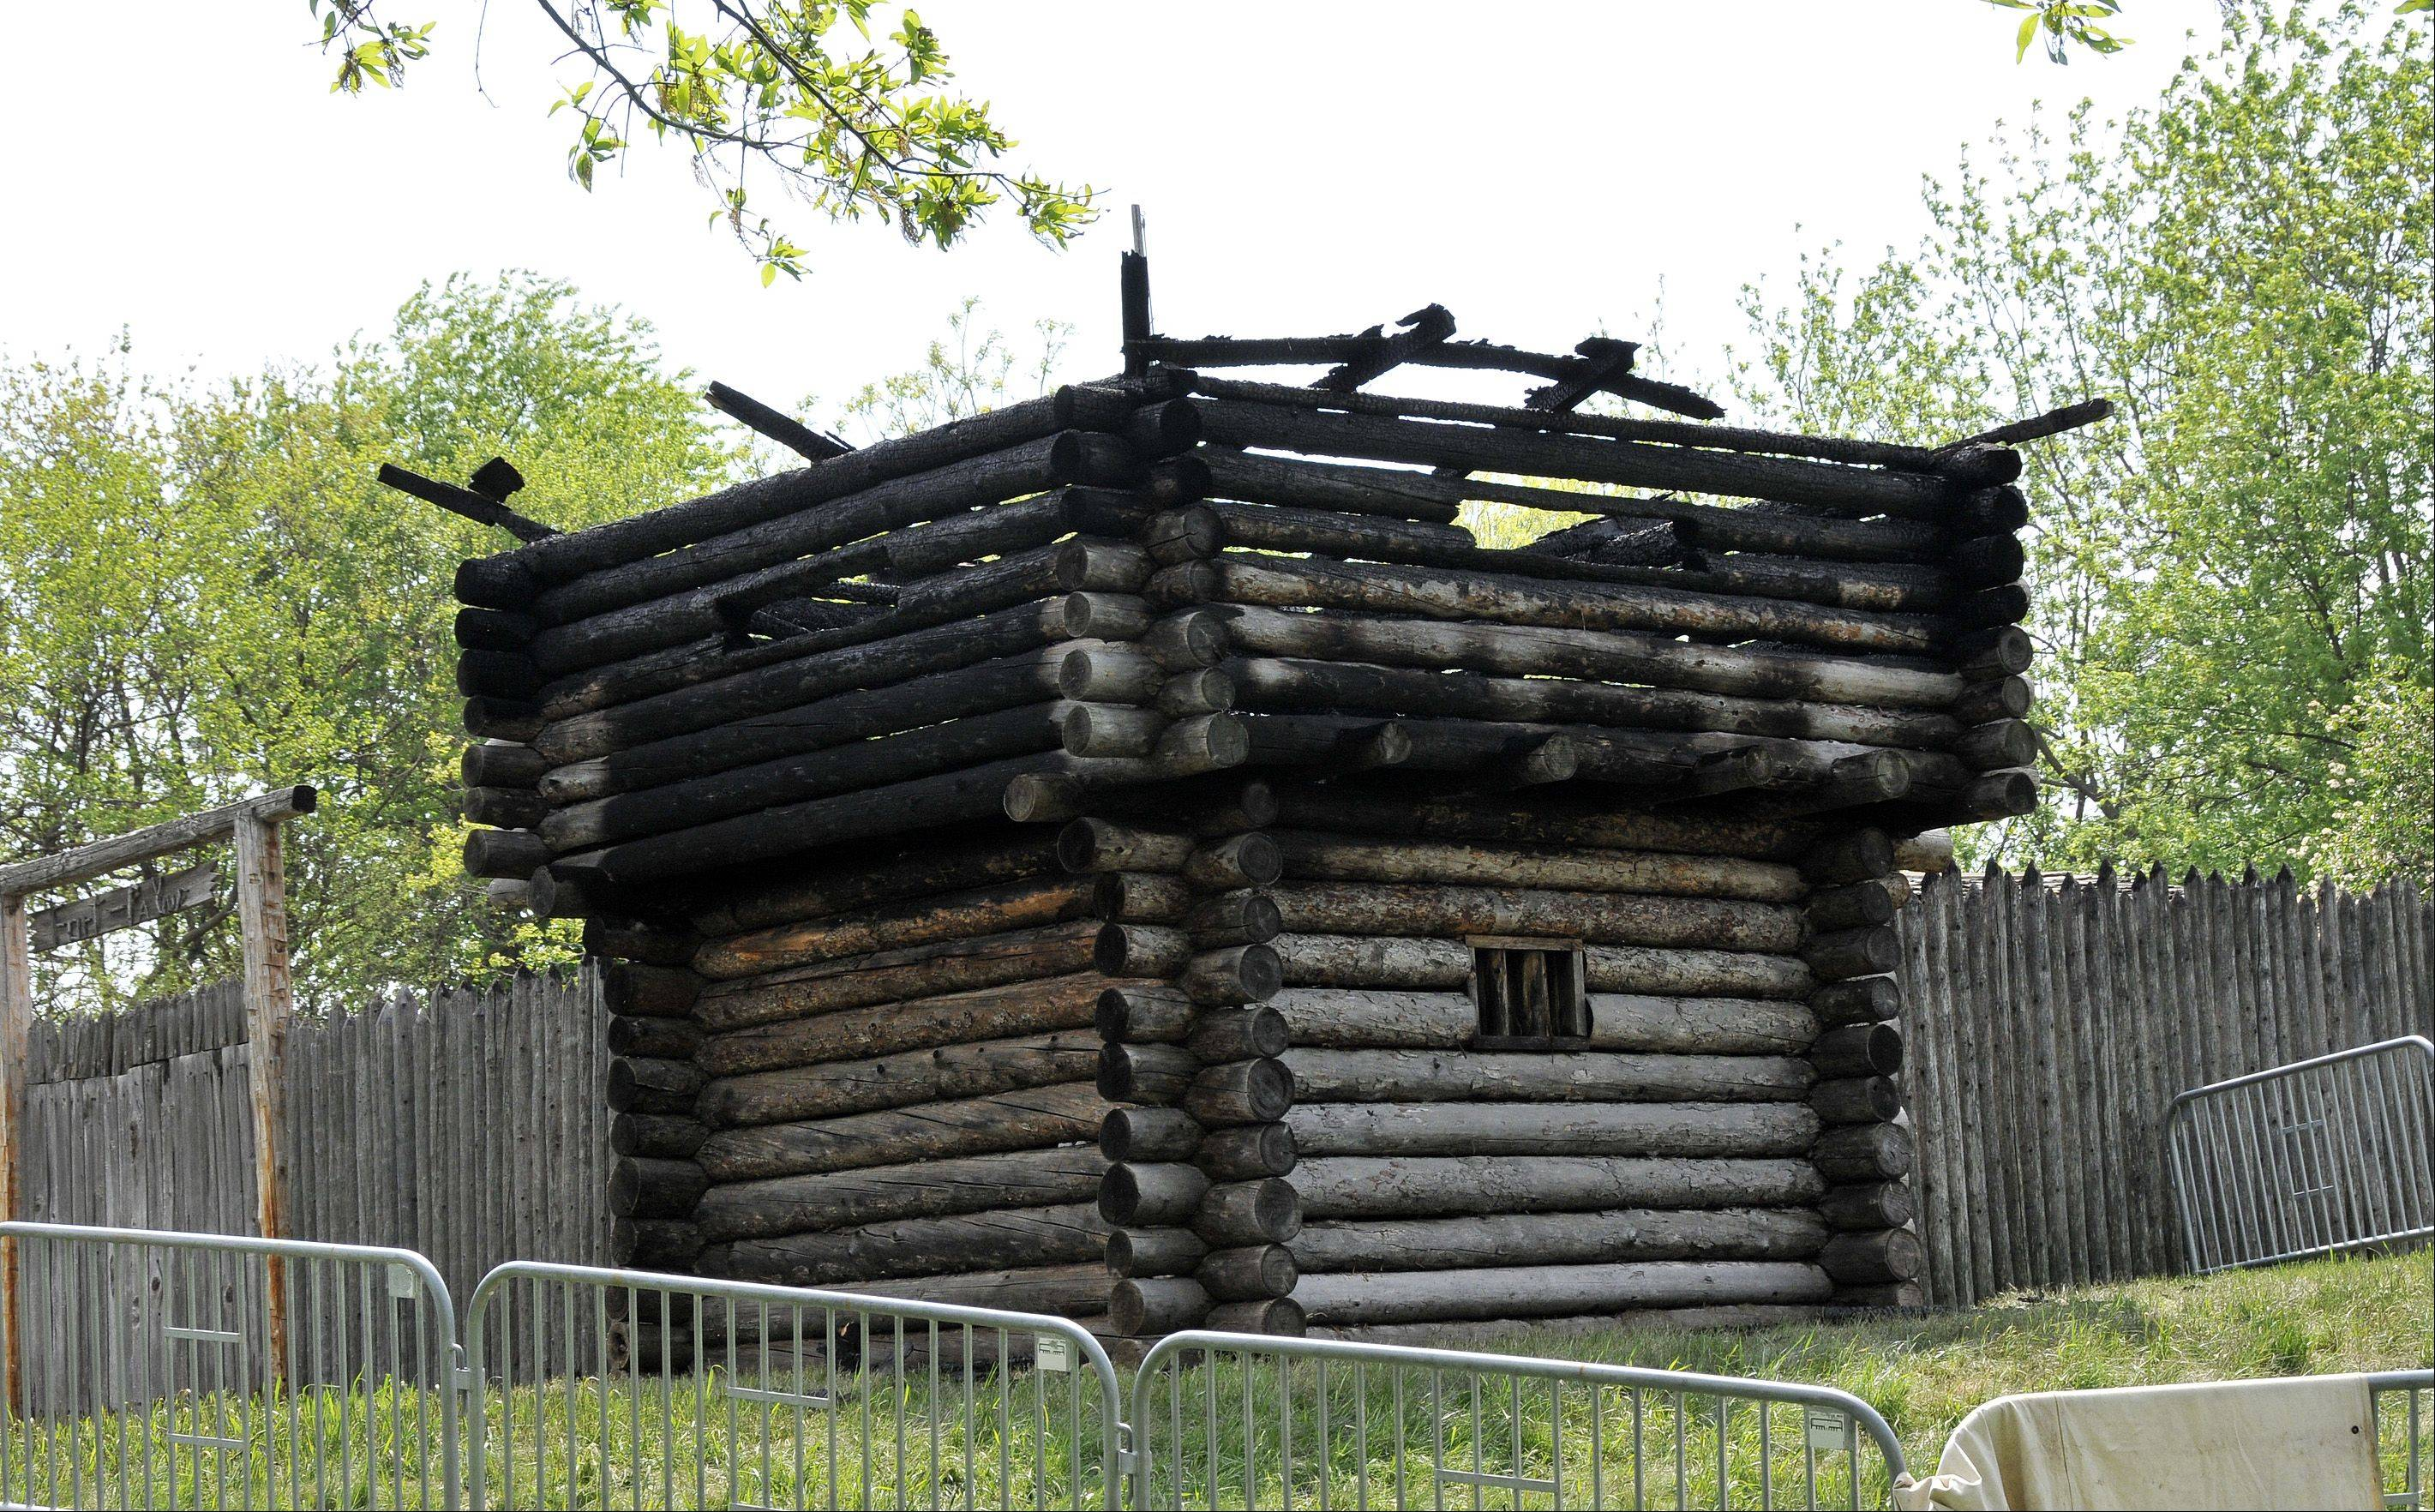 An overnight fire Sunday damaged one of the towers of Fort Payne building at the Naper Settlement living-history museum in Naperville. Authorities were working Sunday to determine the cause of the fire.